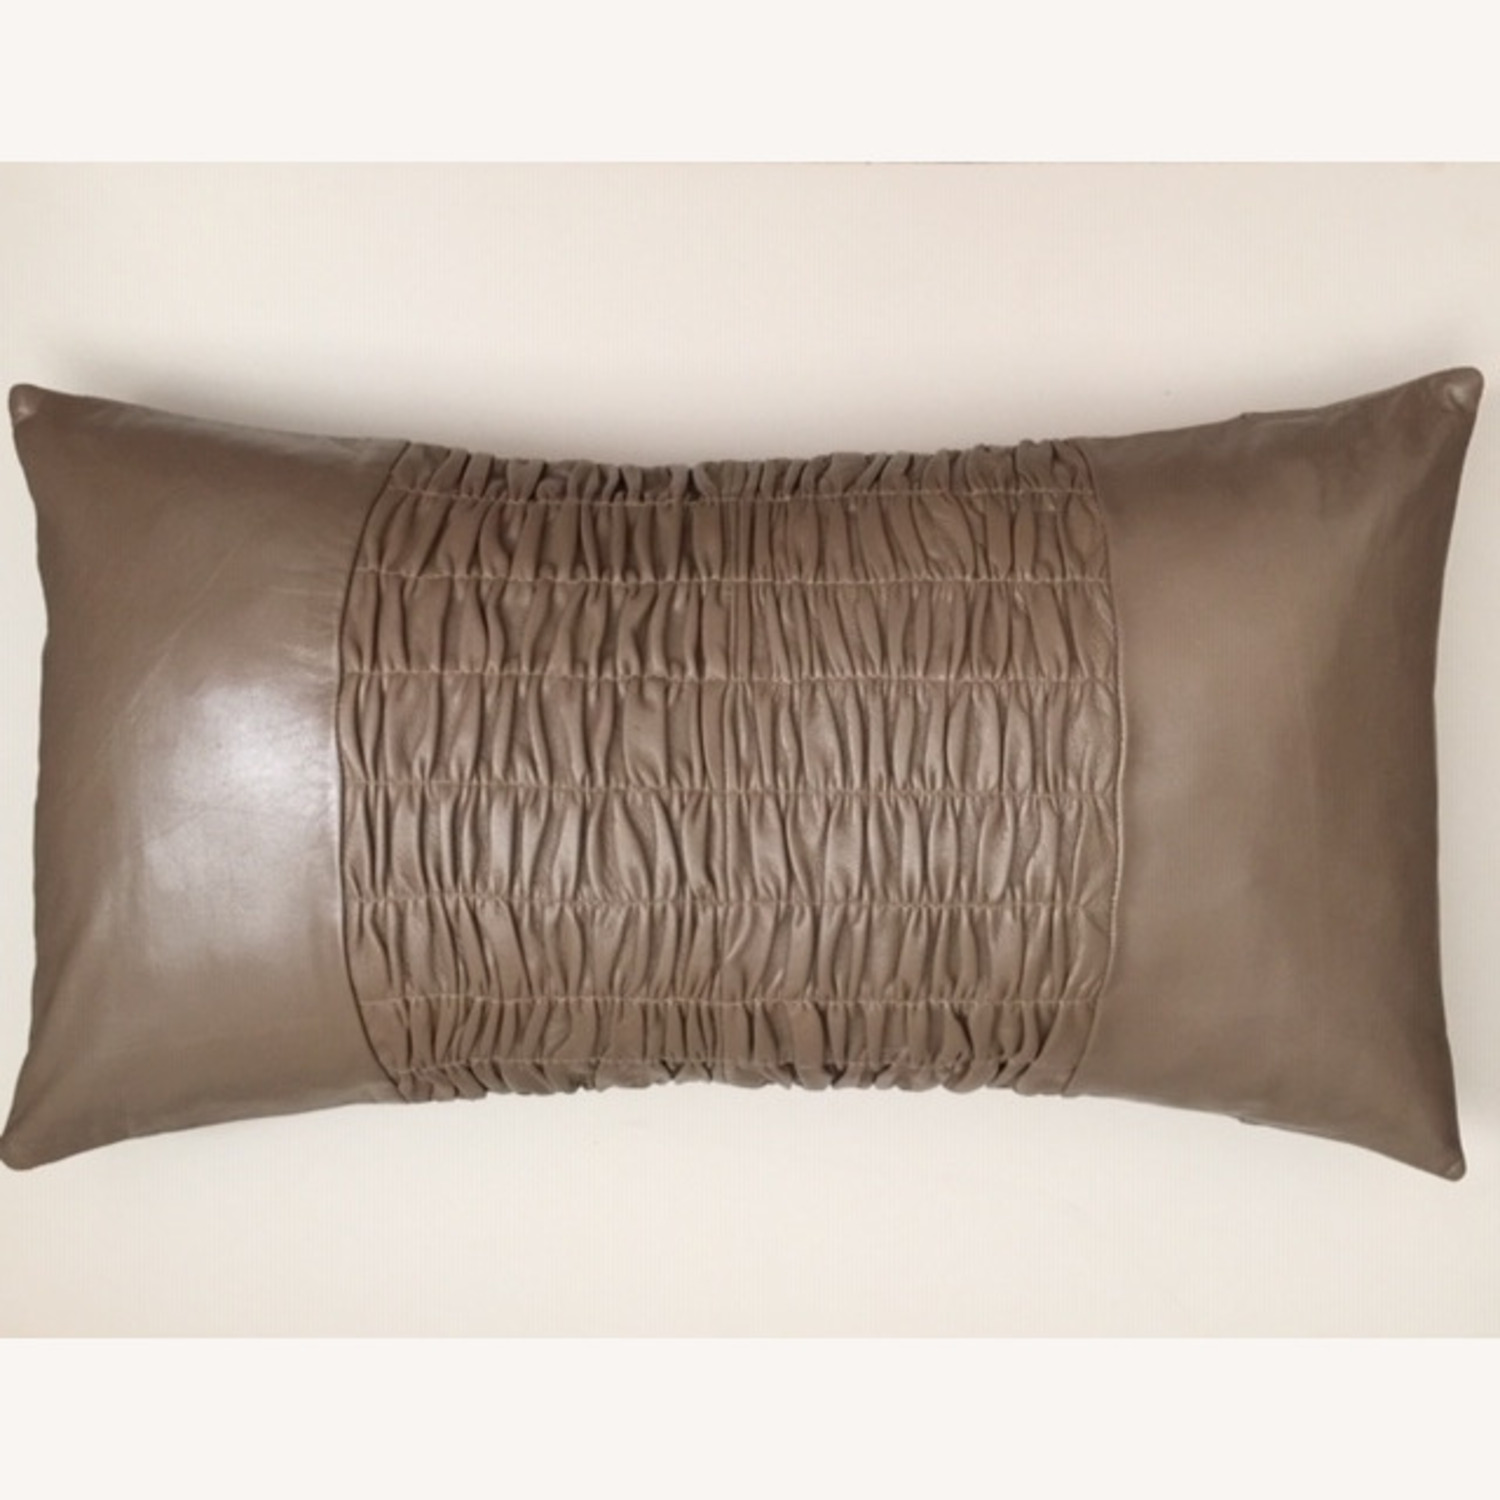 Modern Ruched Leather Pillow - image-1